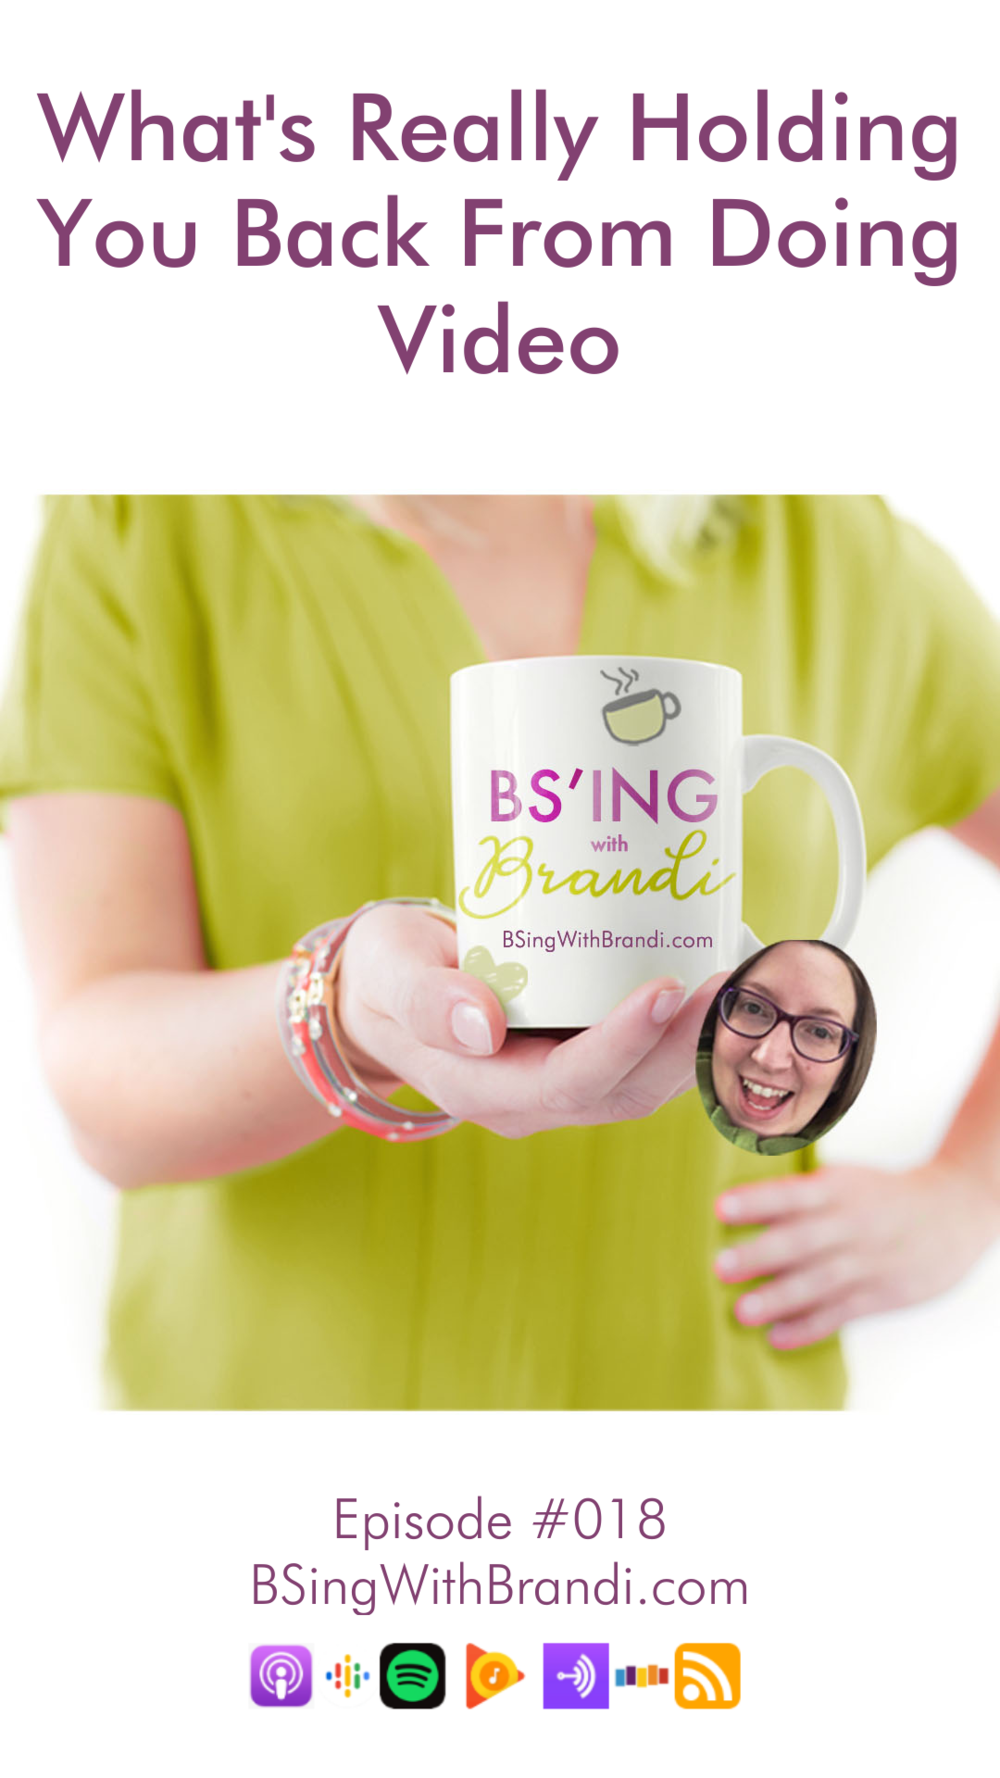 Welcome to BS'ing with Brandi where my mission is to help you #GetShitDone. I'm your host Brandi Good and today we're going to talk about one of the biggest reasons you're not doing video for your business. One of the big reasons is tech confusion and frustration, but I talk and write about that all of the time. Today's episode is tackling something a bit more personal, a bit more uncomfortable: fear. Specifically fear of criticism.